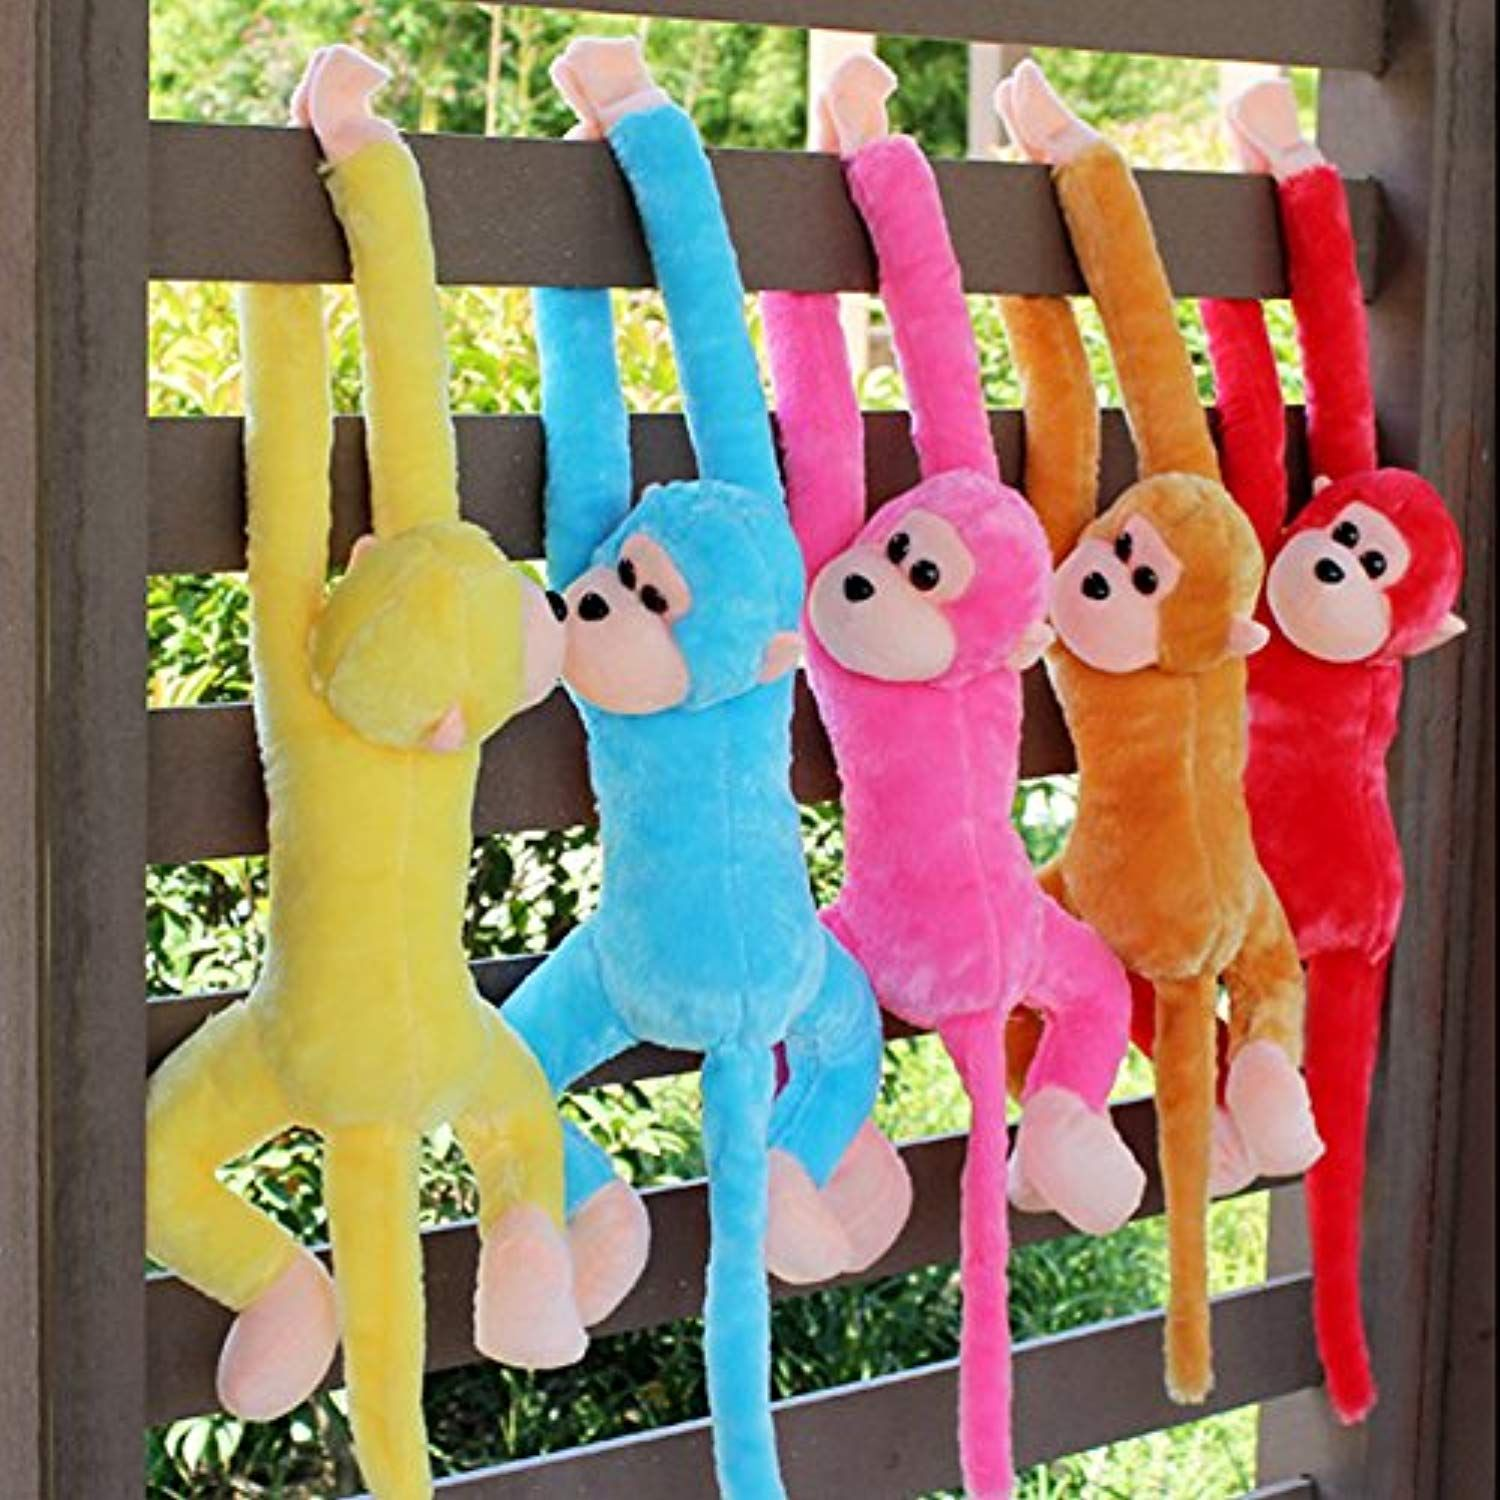 Bw Plush Stuffed Long Arm Monkey Zoo Animals With Velcro Paws Christmas Gift More Info Could Be Found Soft Toy Animals Monkey Stuffed Animal Monkey Plush Toy [ 1500 x 1500 Pixel ]